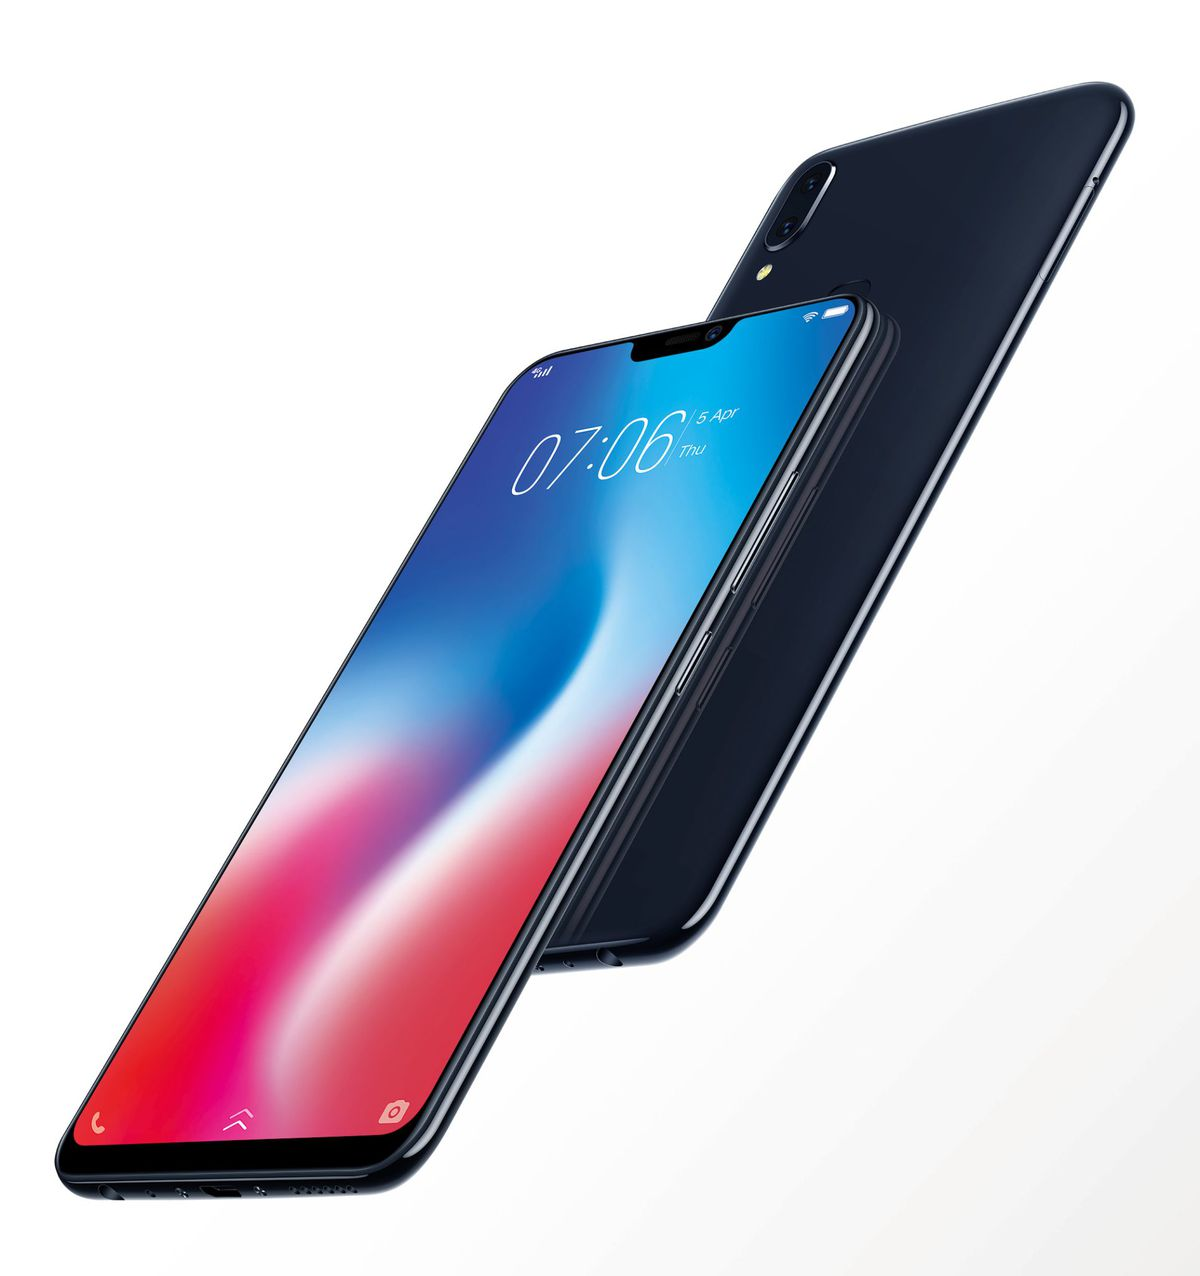 Photo of Vivo V9 has been officially launched in India